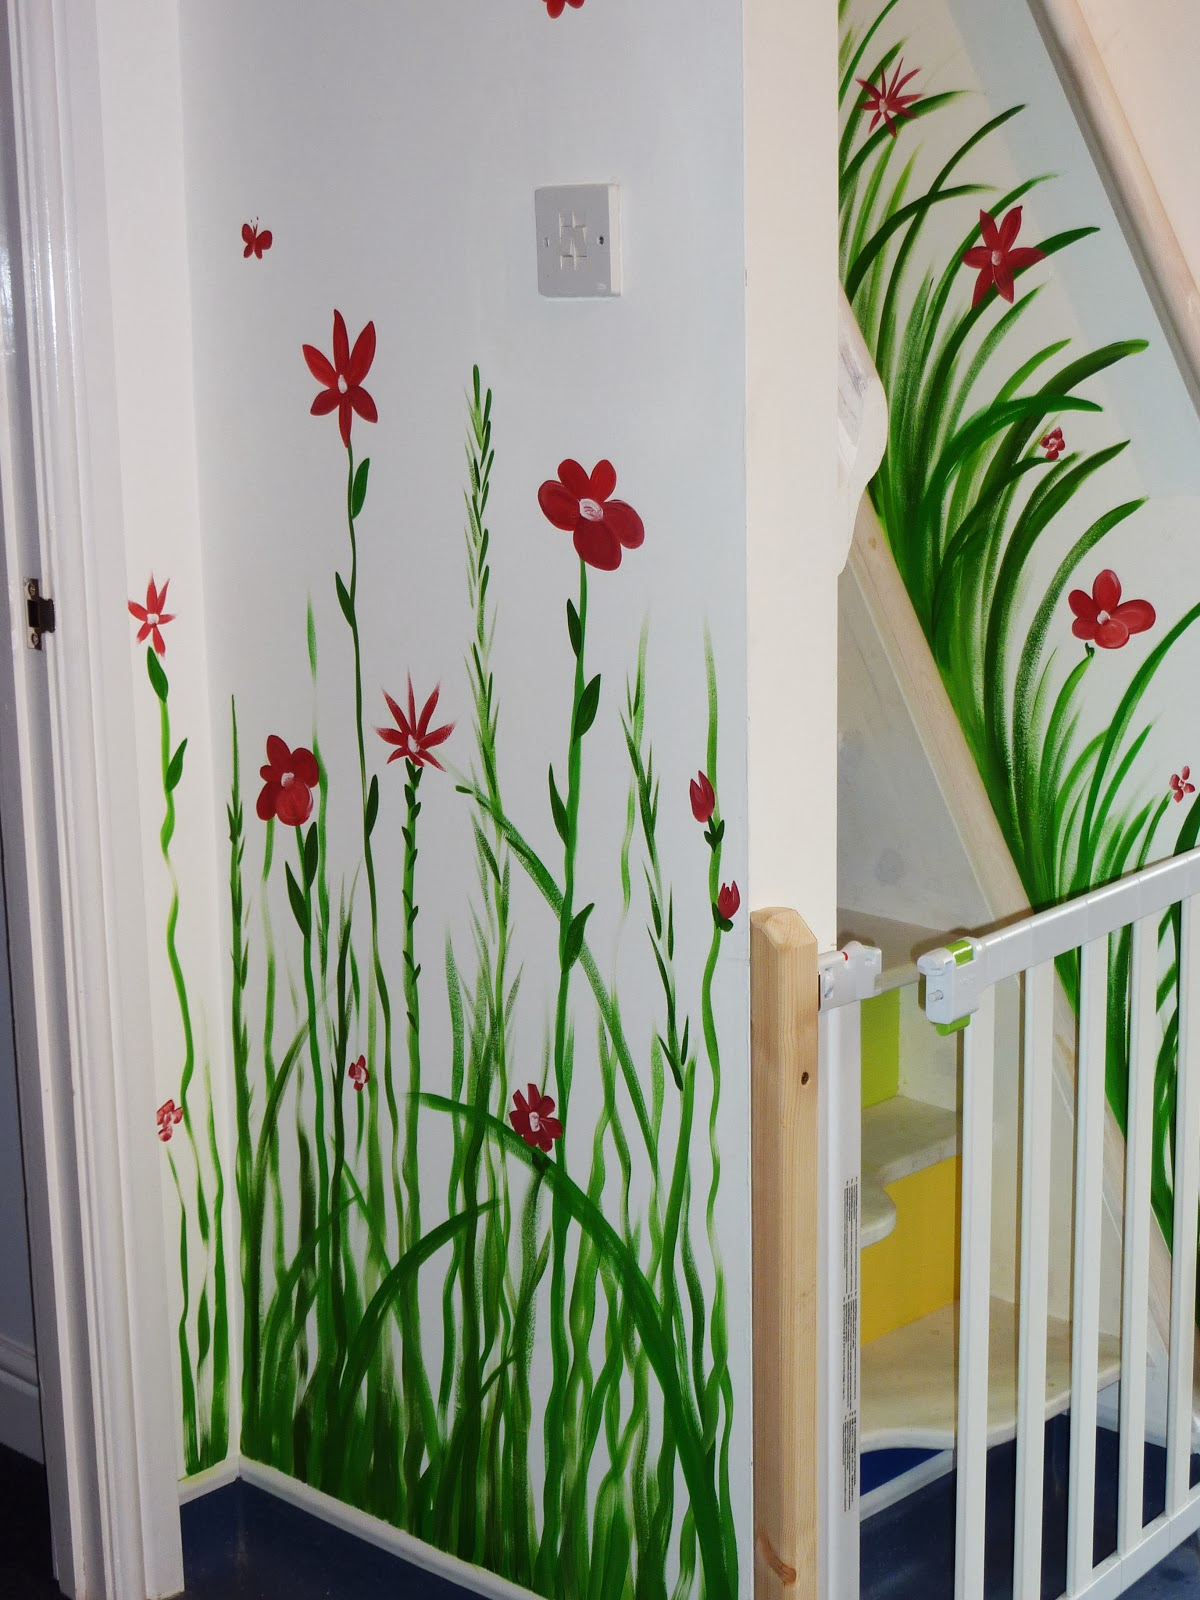 Joanna perry top mural artist hand painting murals for Mural flower